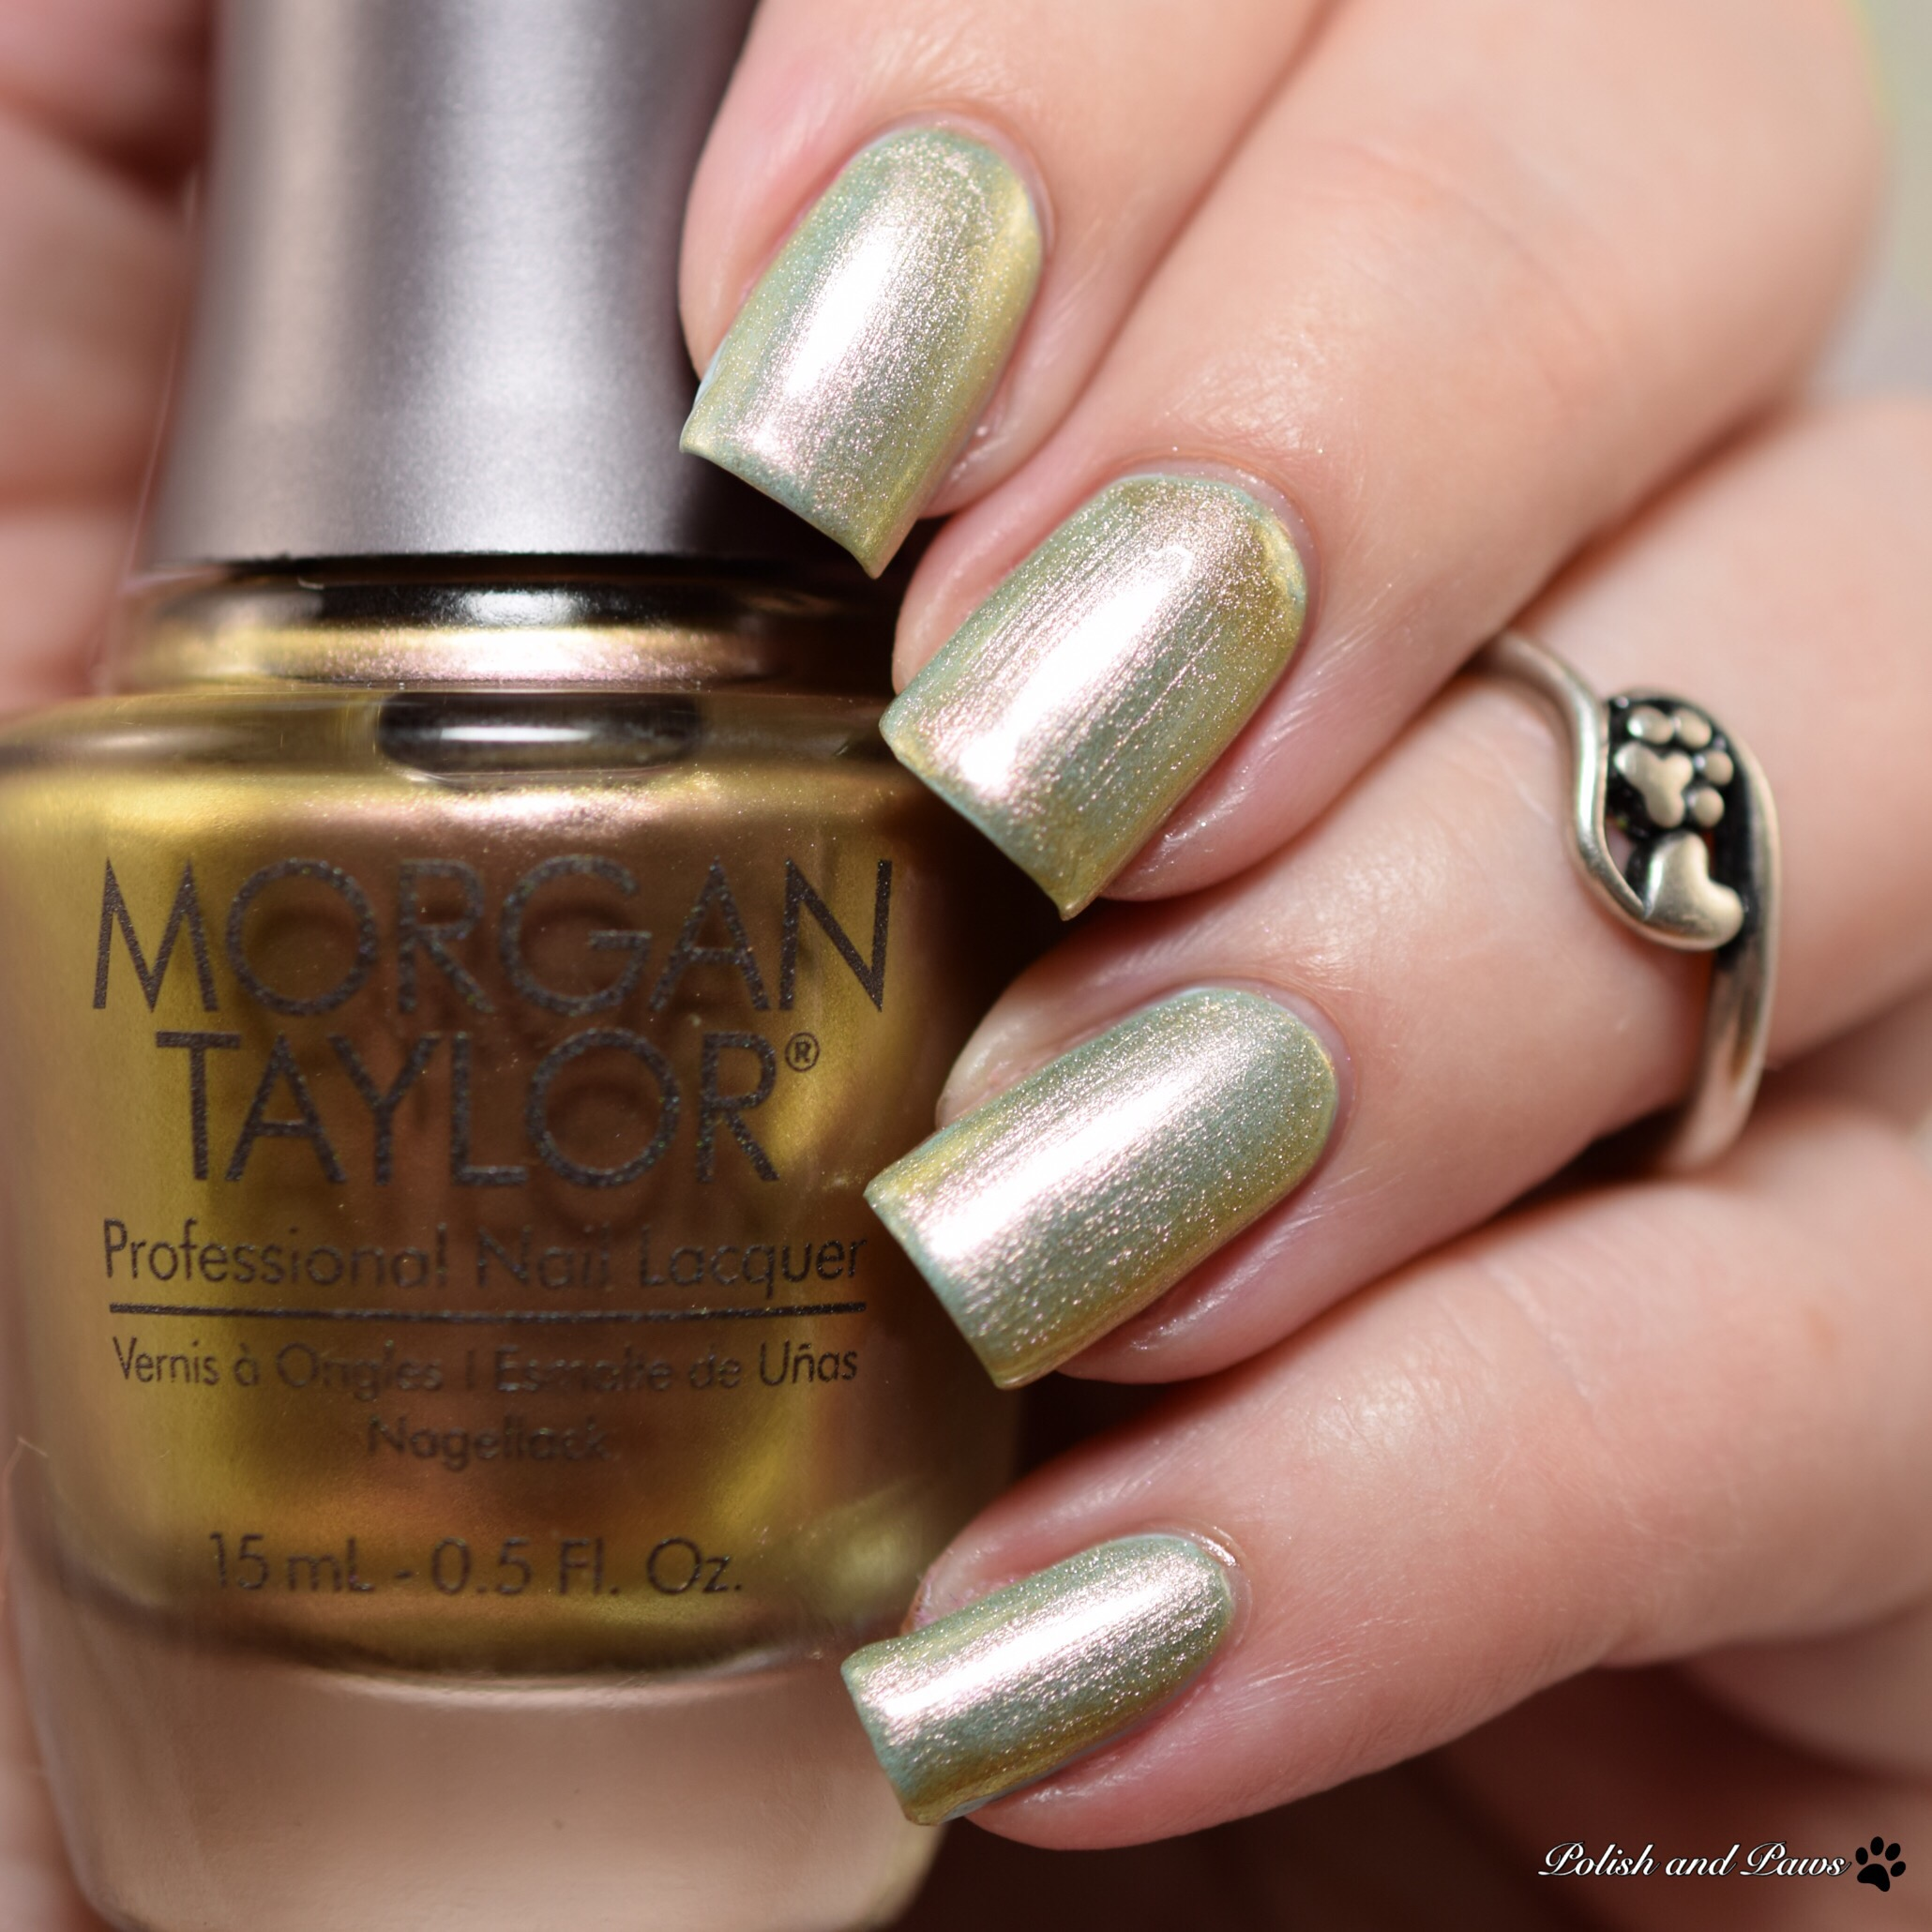 Morgan Taylor Patina over Gaston and On and On